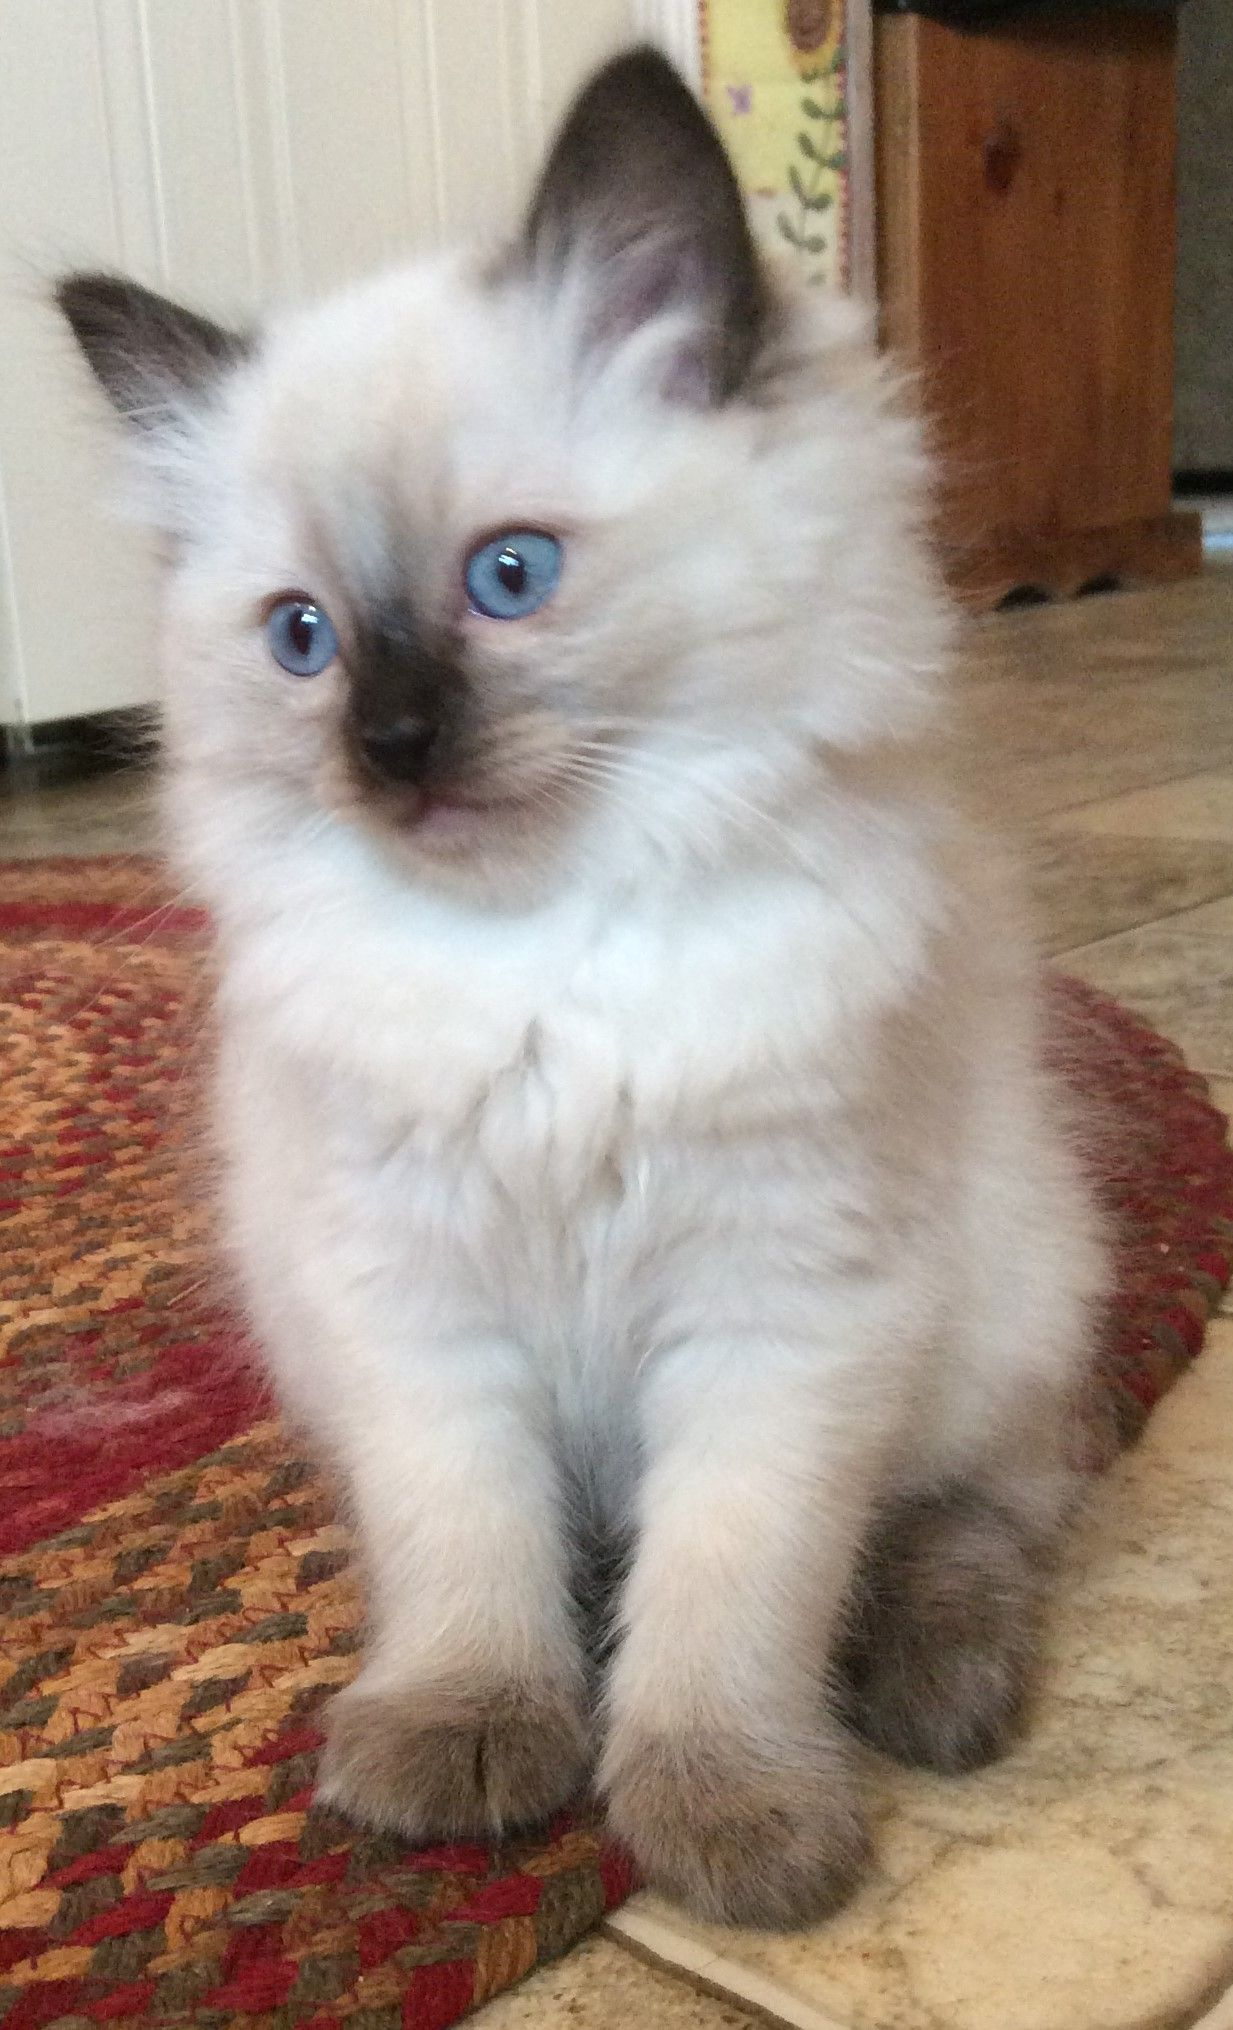 adorable sepia mink colorpoint ragdoll kittens my ragdoll myresa is a seal point ragdoll kitten from our third litter she has the sweetest